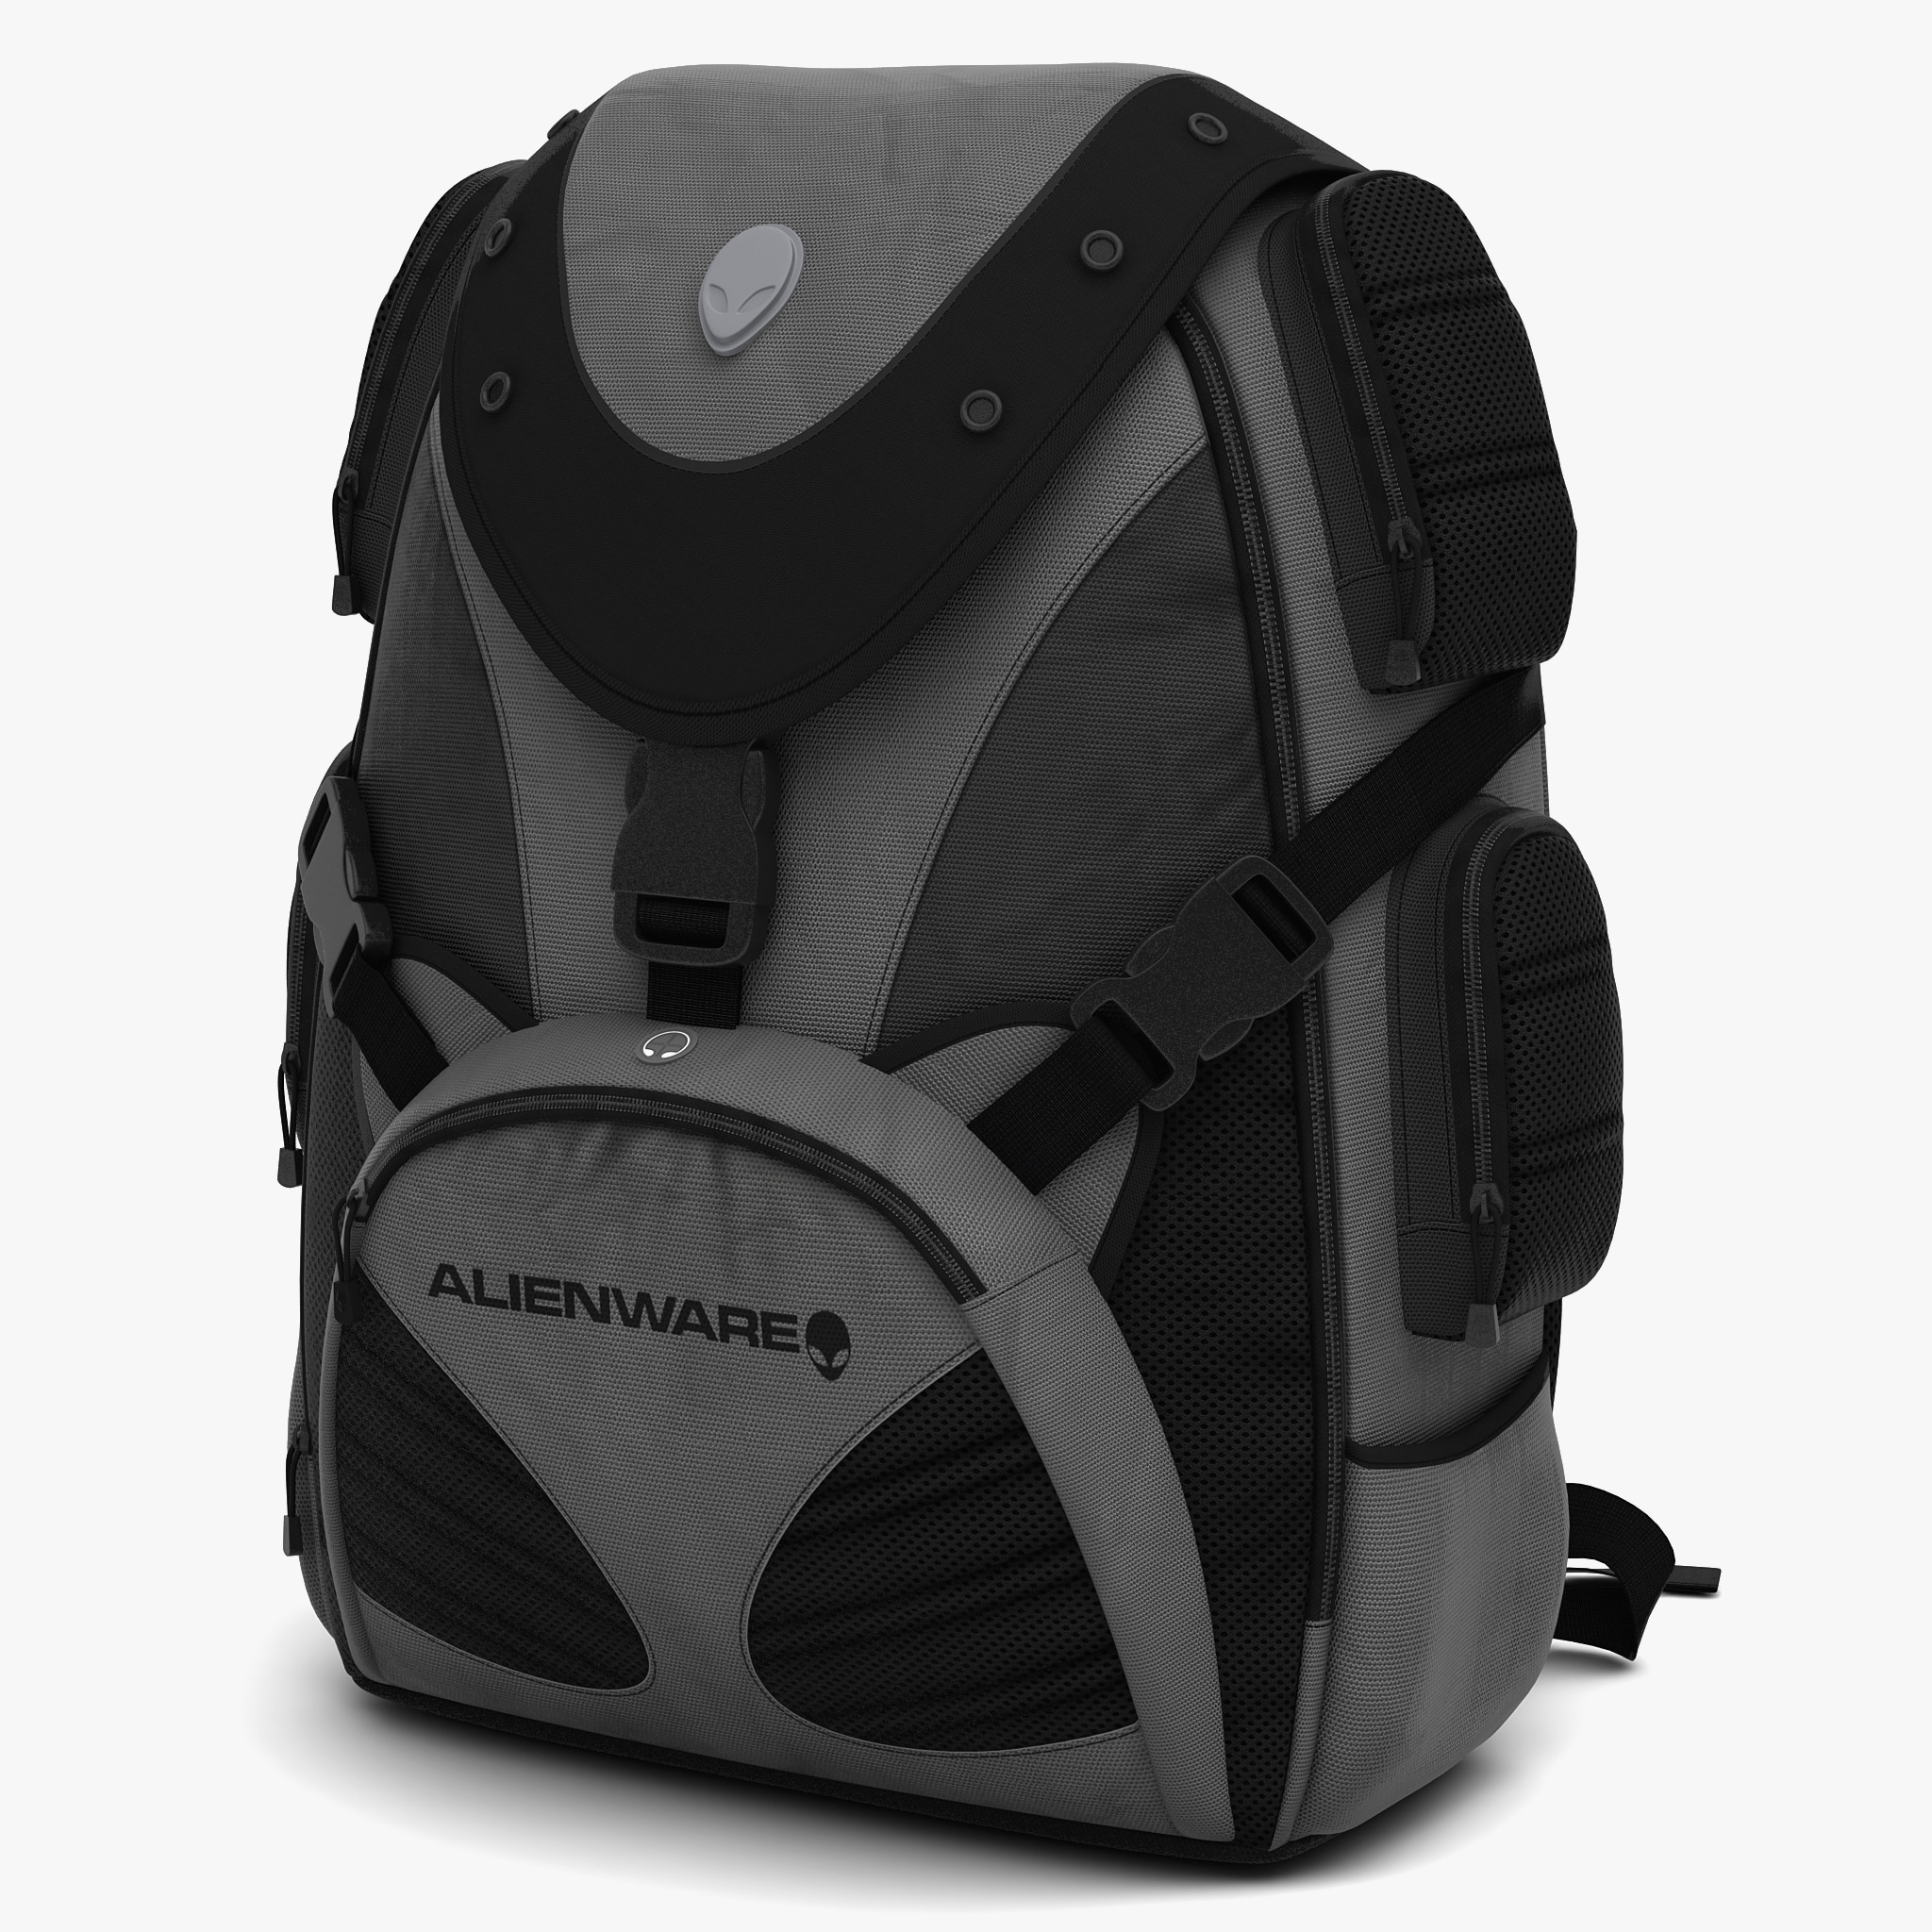 234123_Alienware_Premium_Backpack___0001.jpg